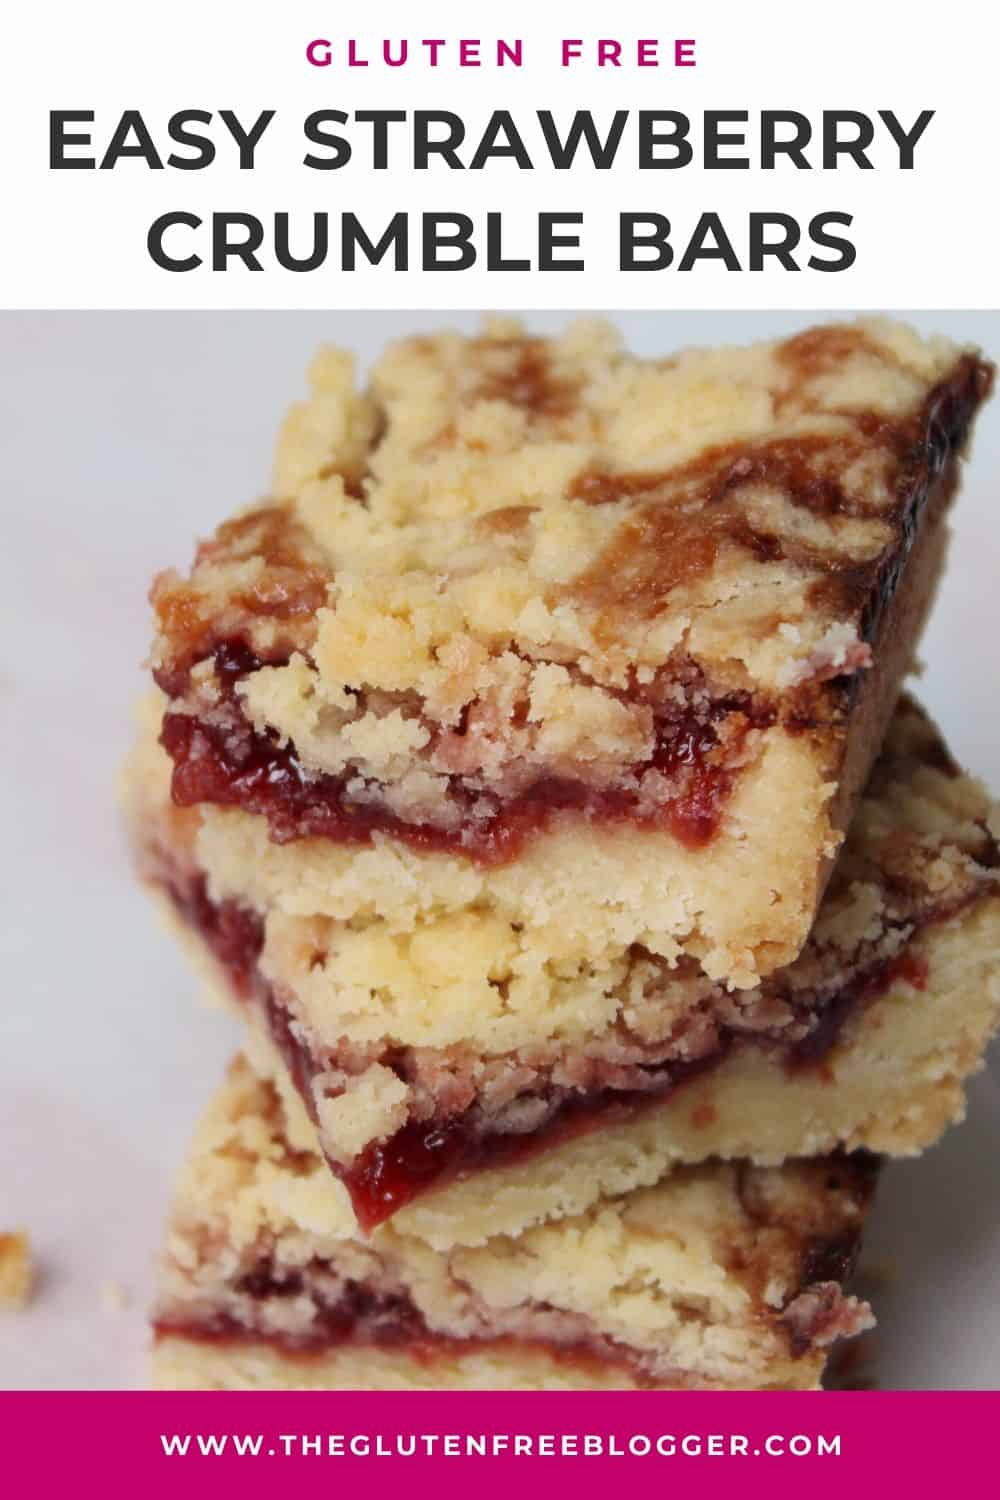 Gluten free strawberry crumble bars baking